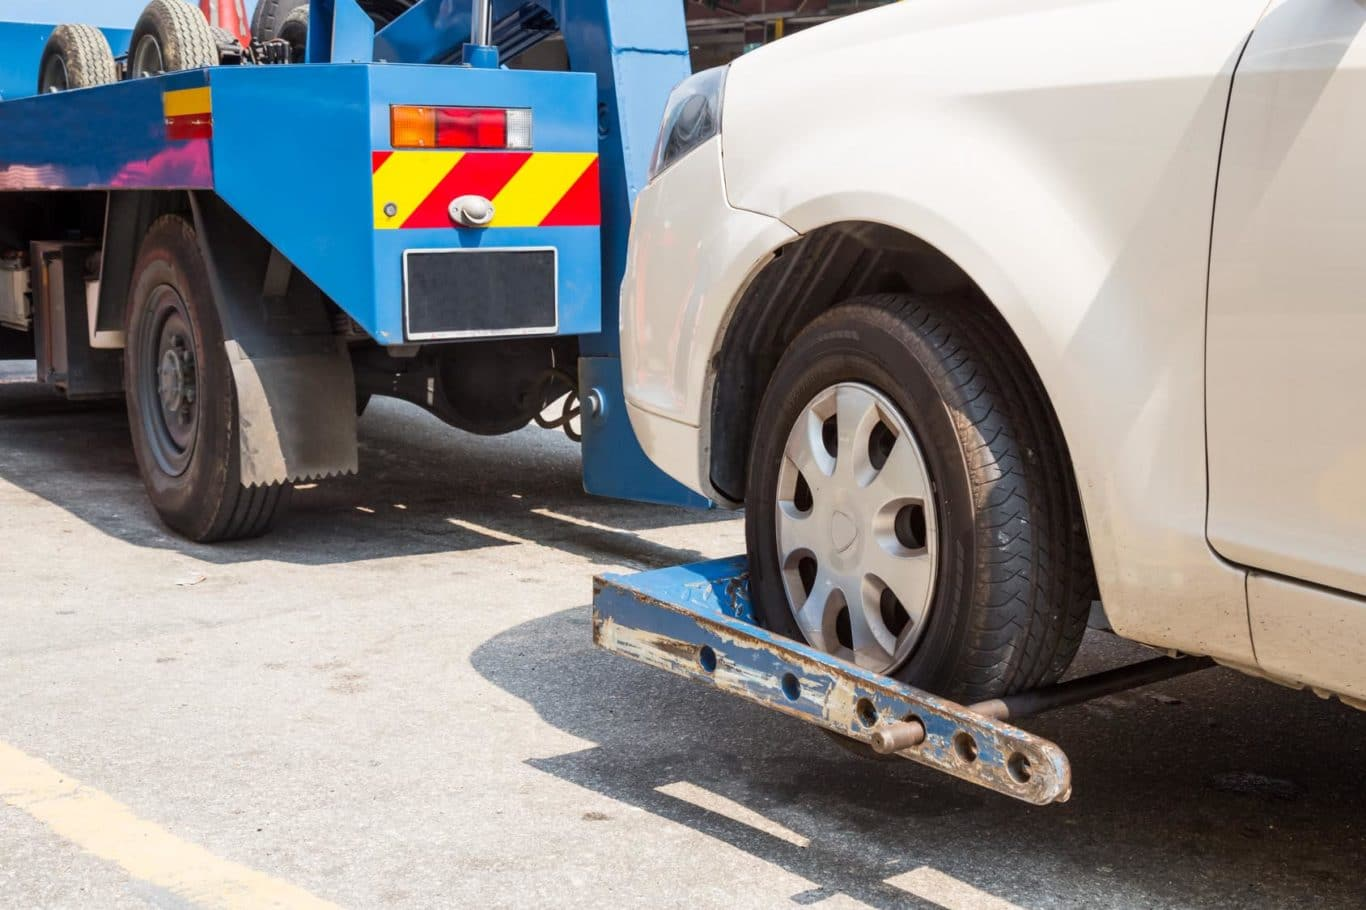 Ballymount expert Car Towing services